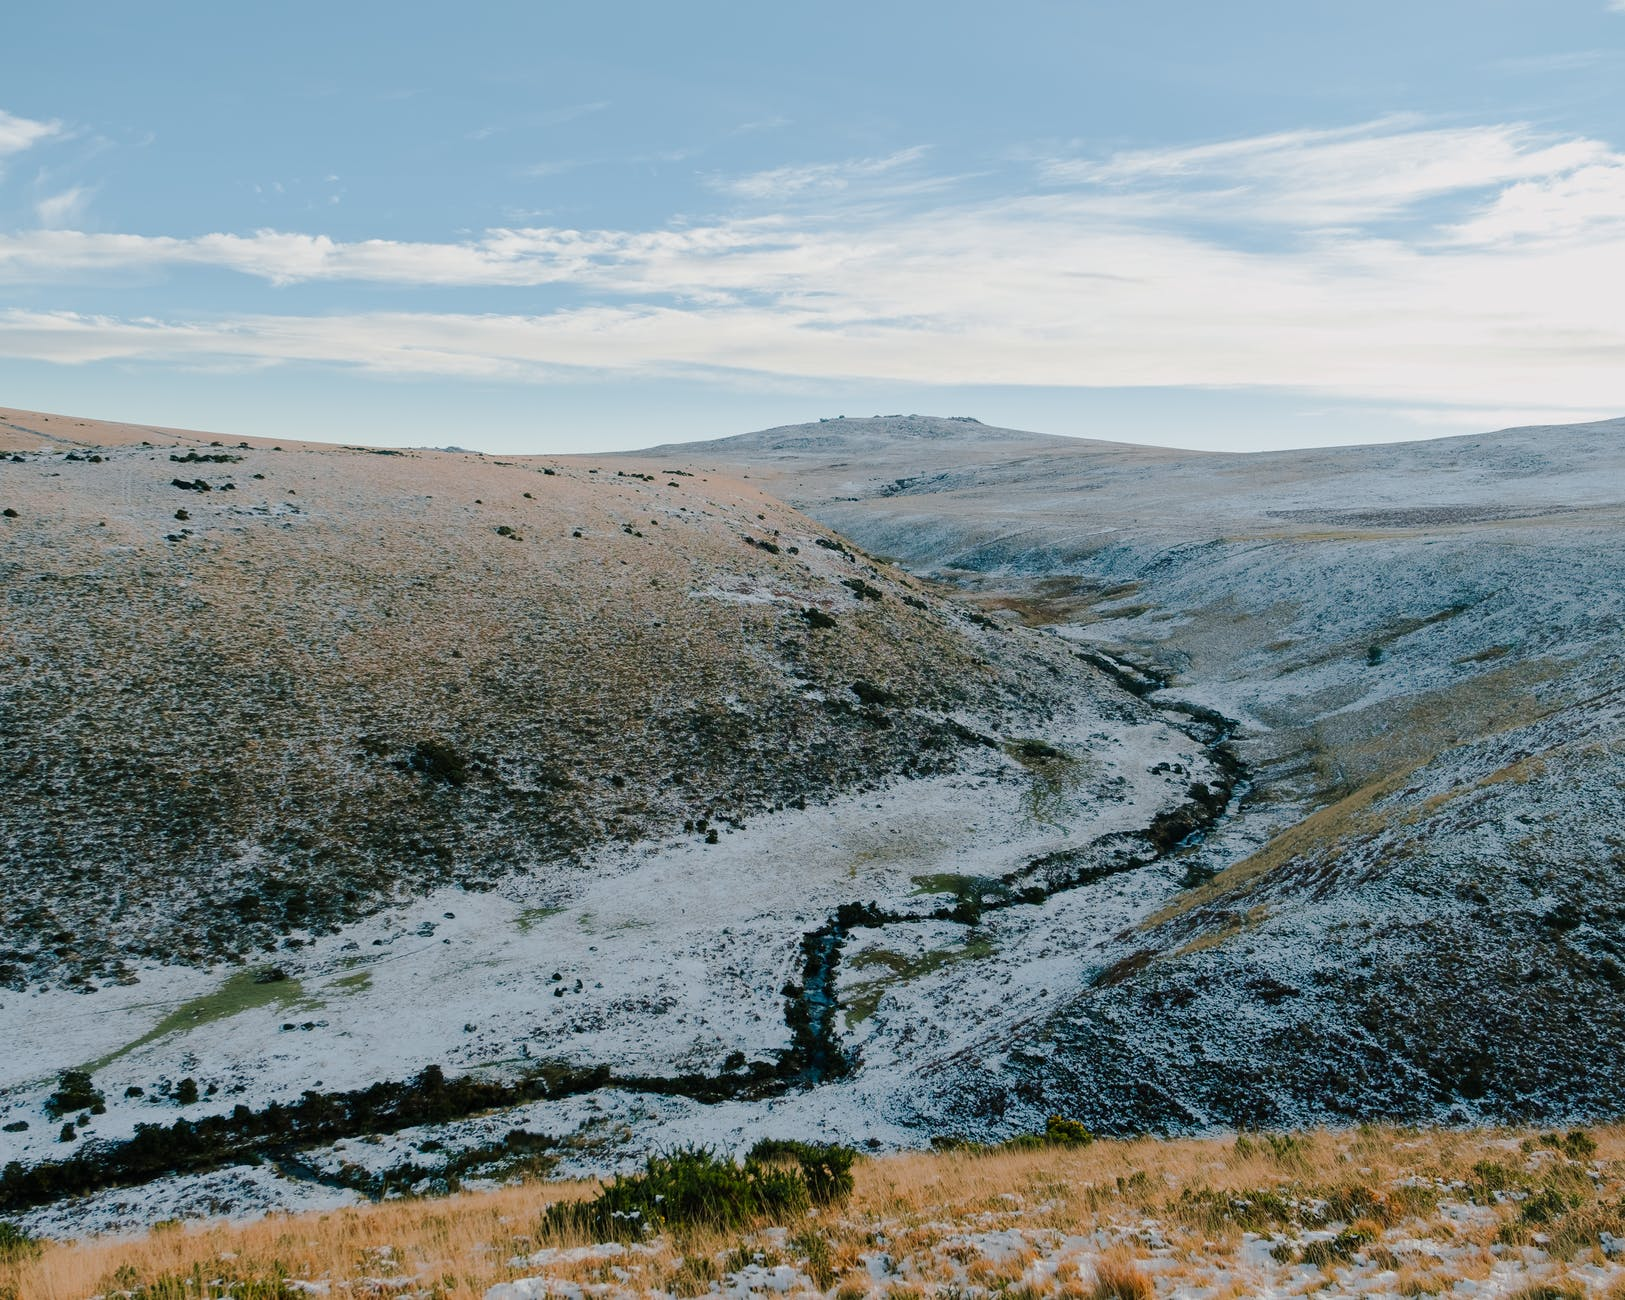 creek flowing through hilly terrain covered with snow